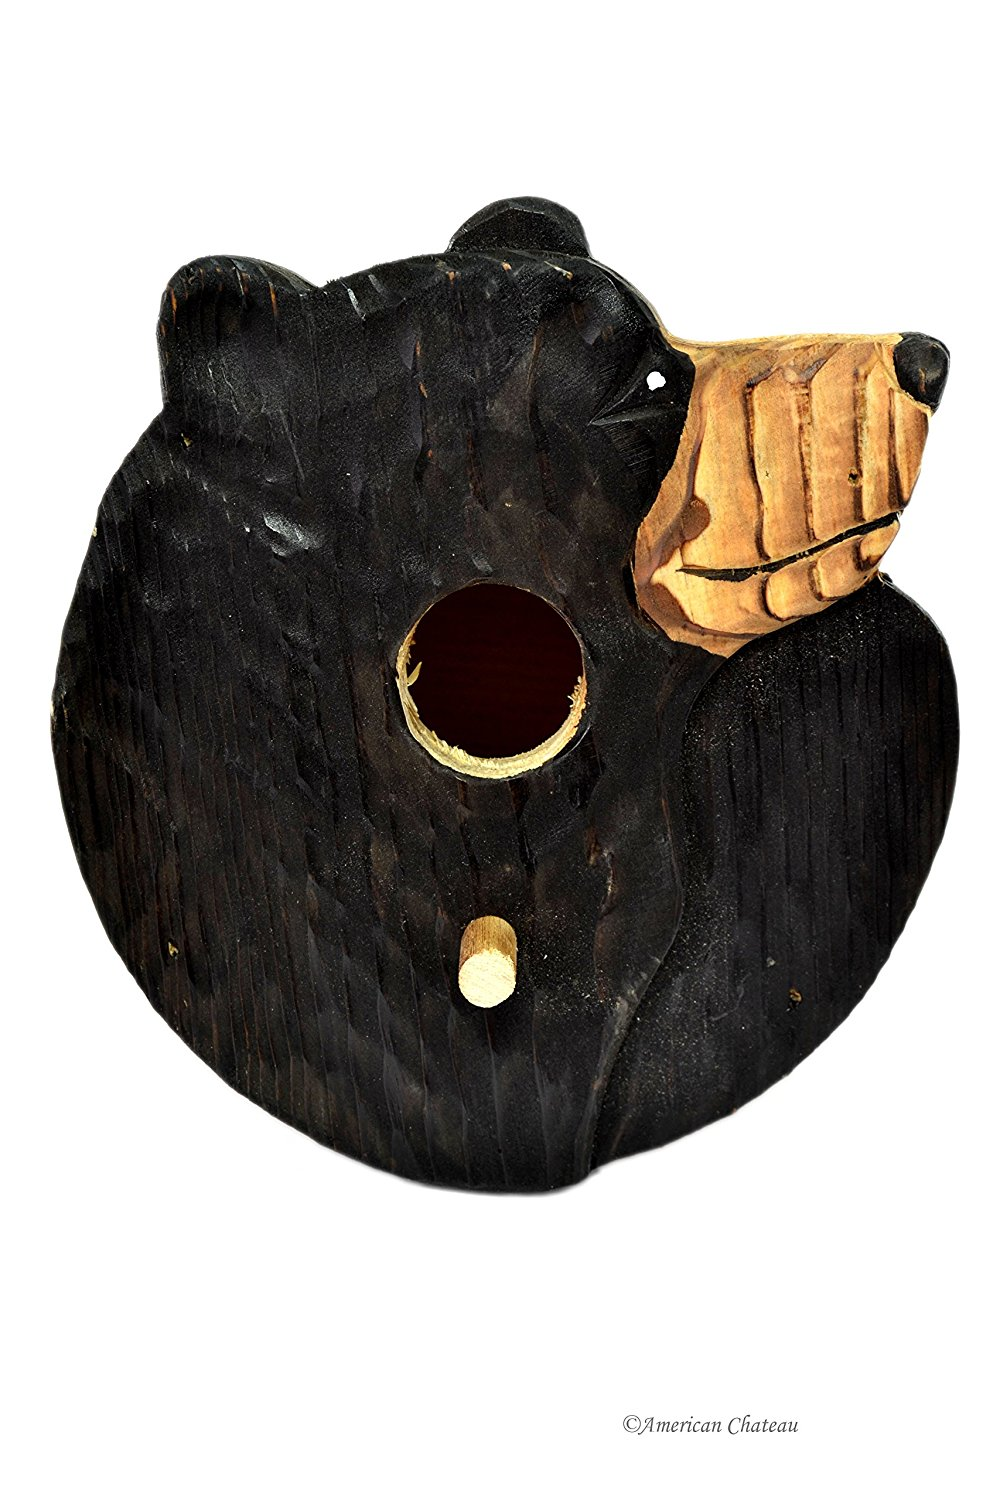 American Chateau Hand Carved & Painted Vintage-Style Wood Black Bear Bird House Garden Decor